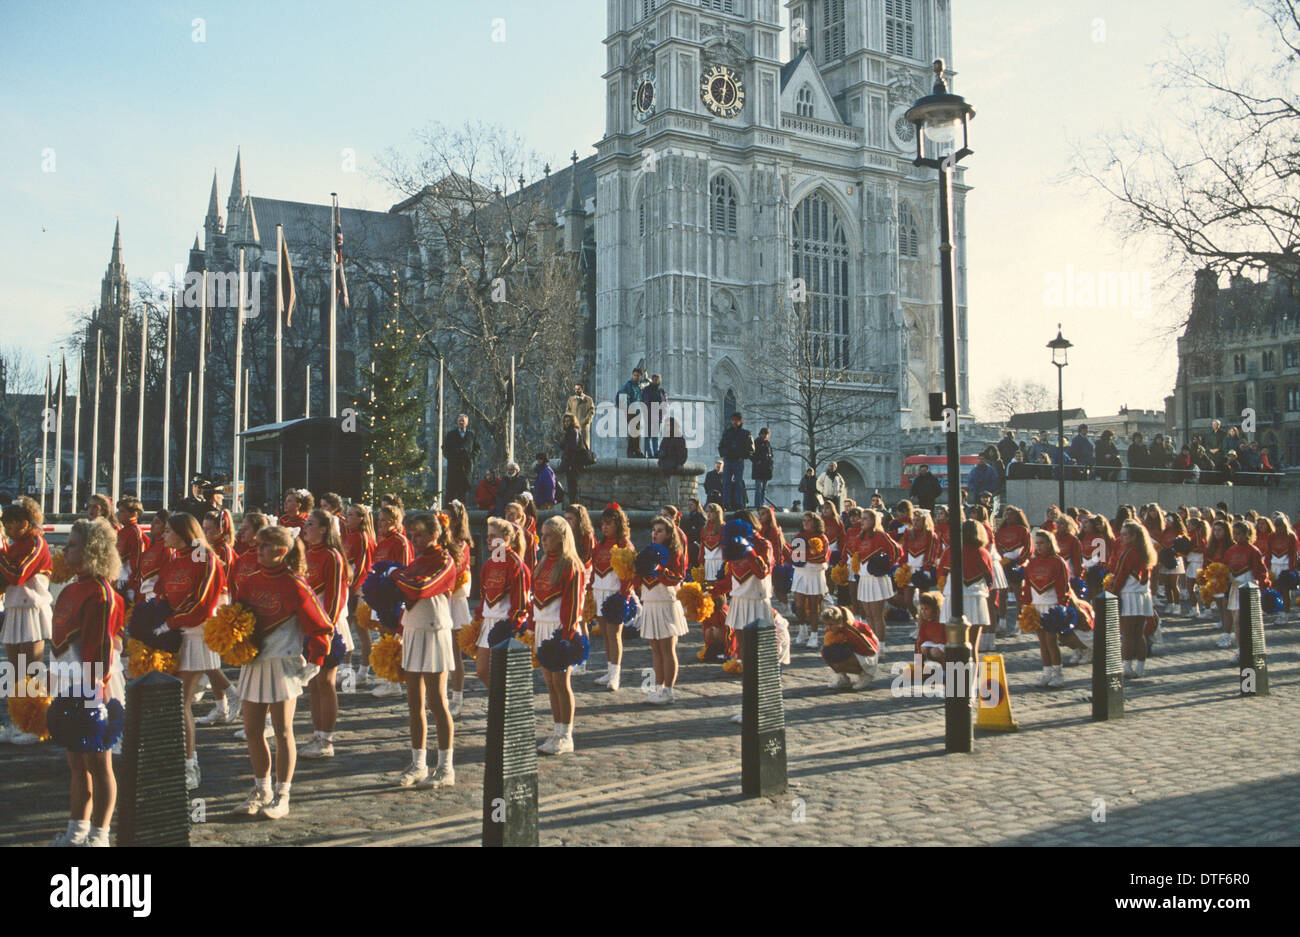 ANNUAL NEW YEAR PARADE . CHEER LEADERS ASSEMBLE IN FRONT OF WESTMINSTER ABBEY LONDON UK - Stock Image